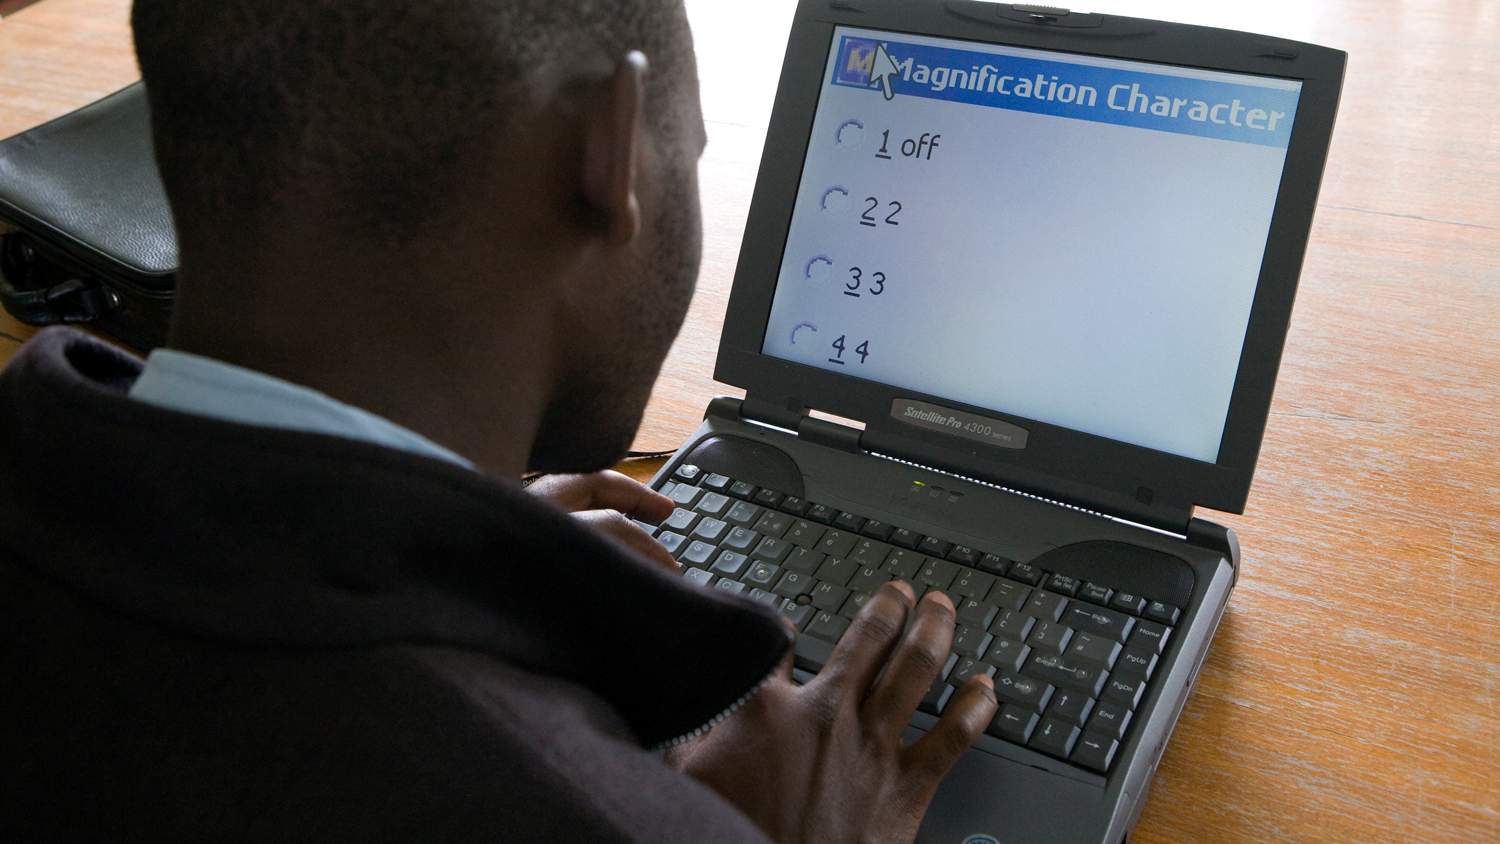 Man using a computer's built-in screen magnification options